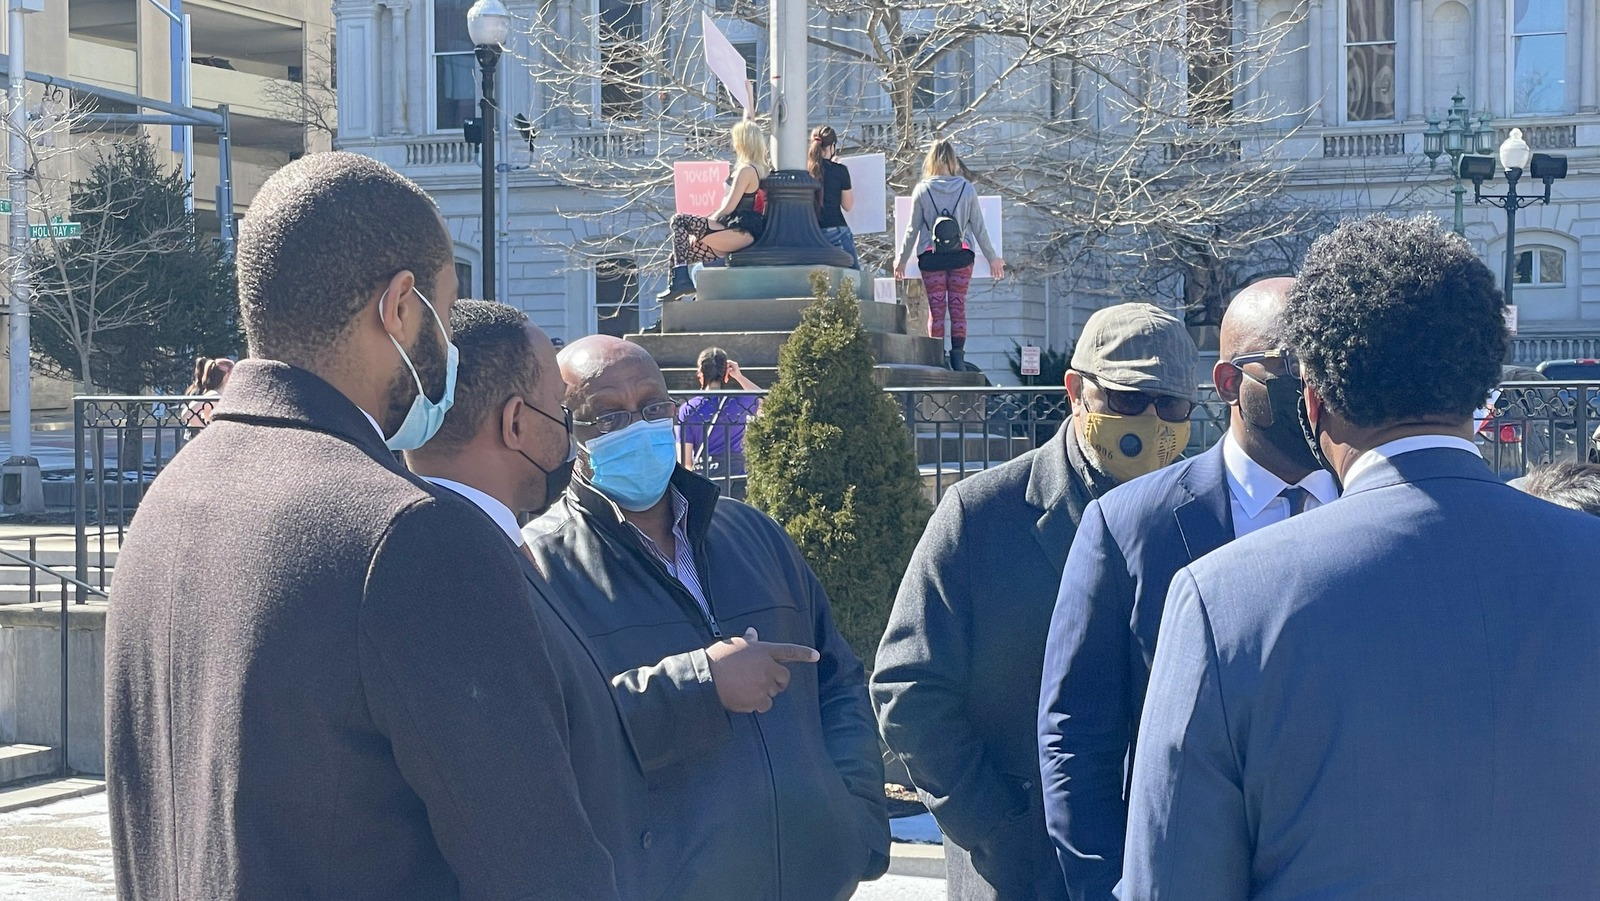 Former mayor Jack Young (in blue mask) with others who had planned to raise questions about Inspector General Isabel Cumming's report on Marilyn Mosby but held off when they discovered a group of strip club dancers were holding a protest nearby. (Louis Krauss)